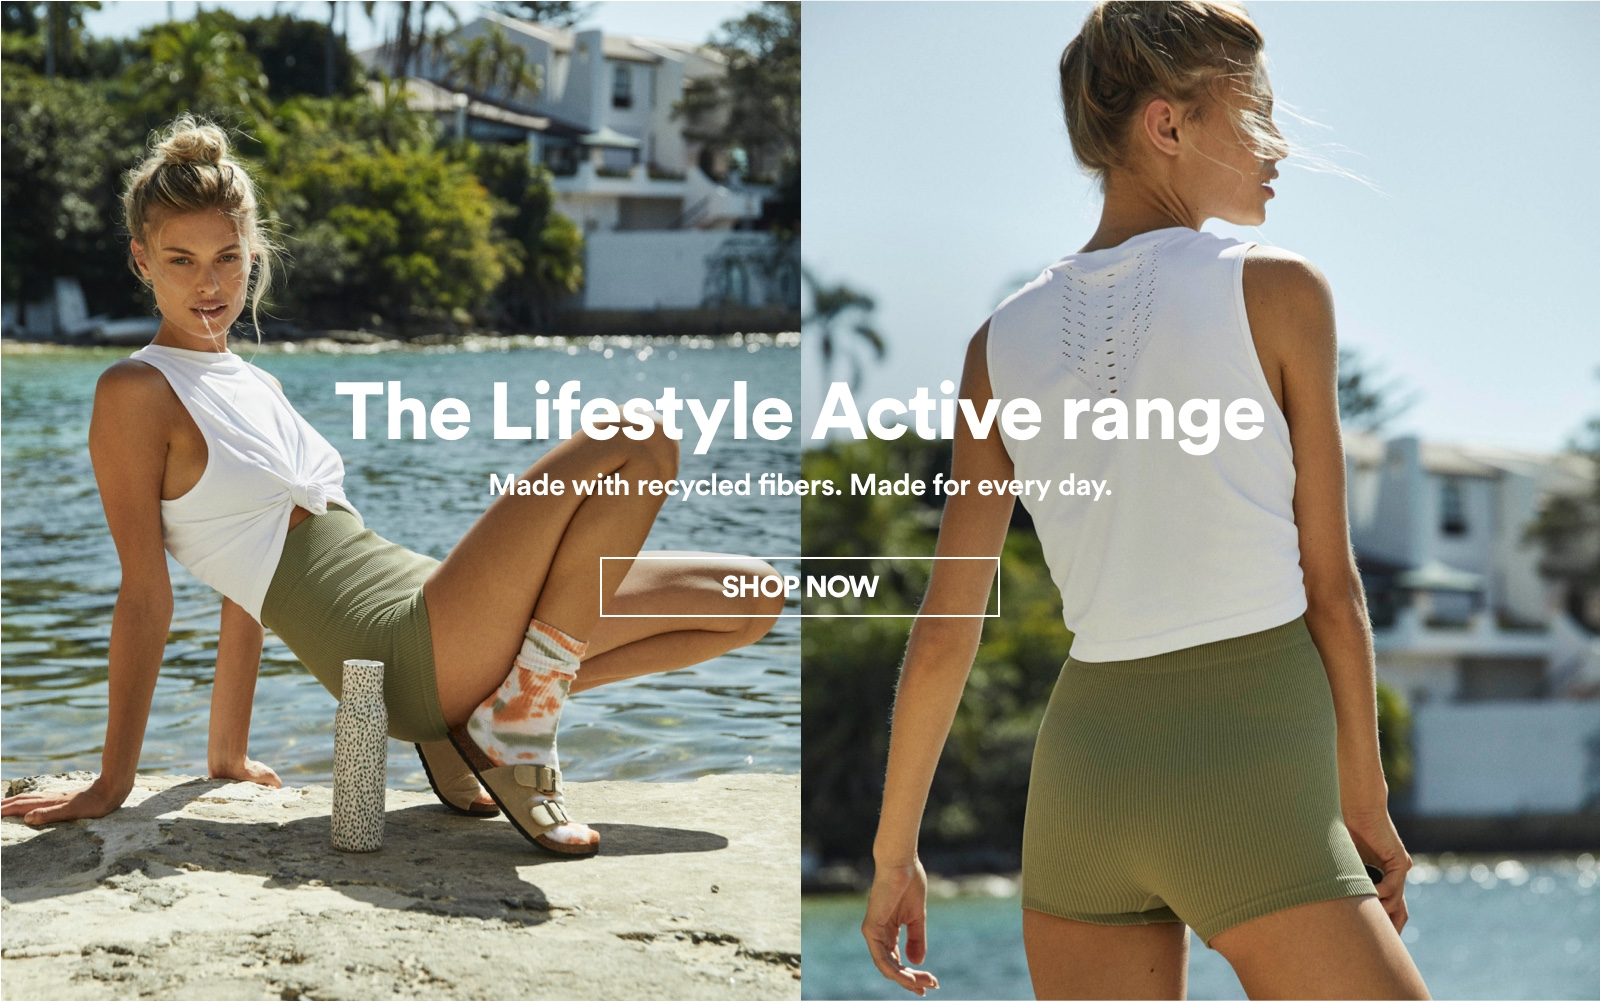 The Lifestyle Active Range. Made with recycled fibers. Made for every day. Click to Shop Now